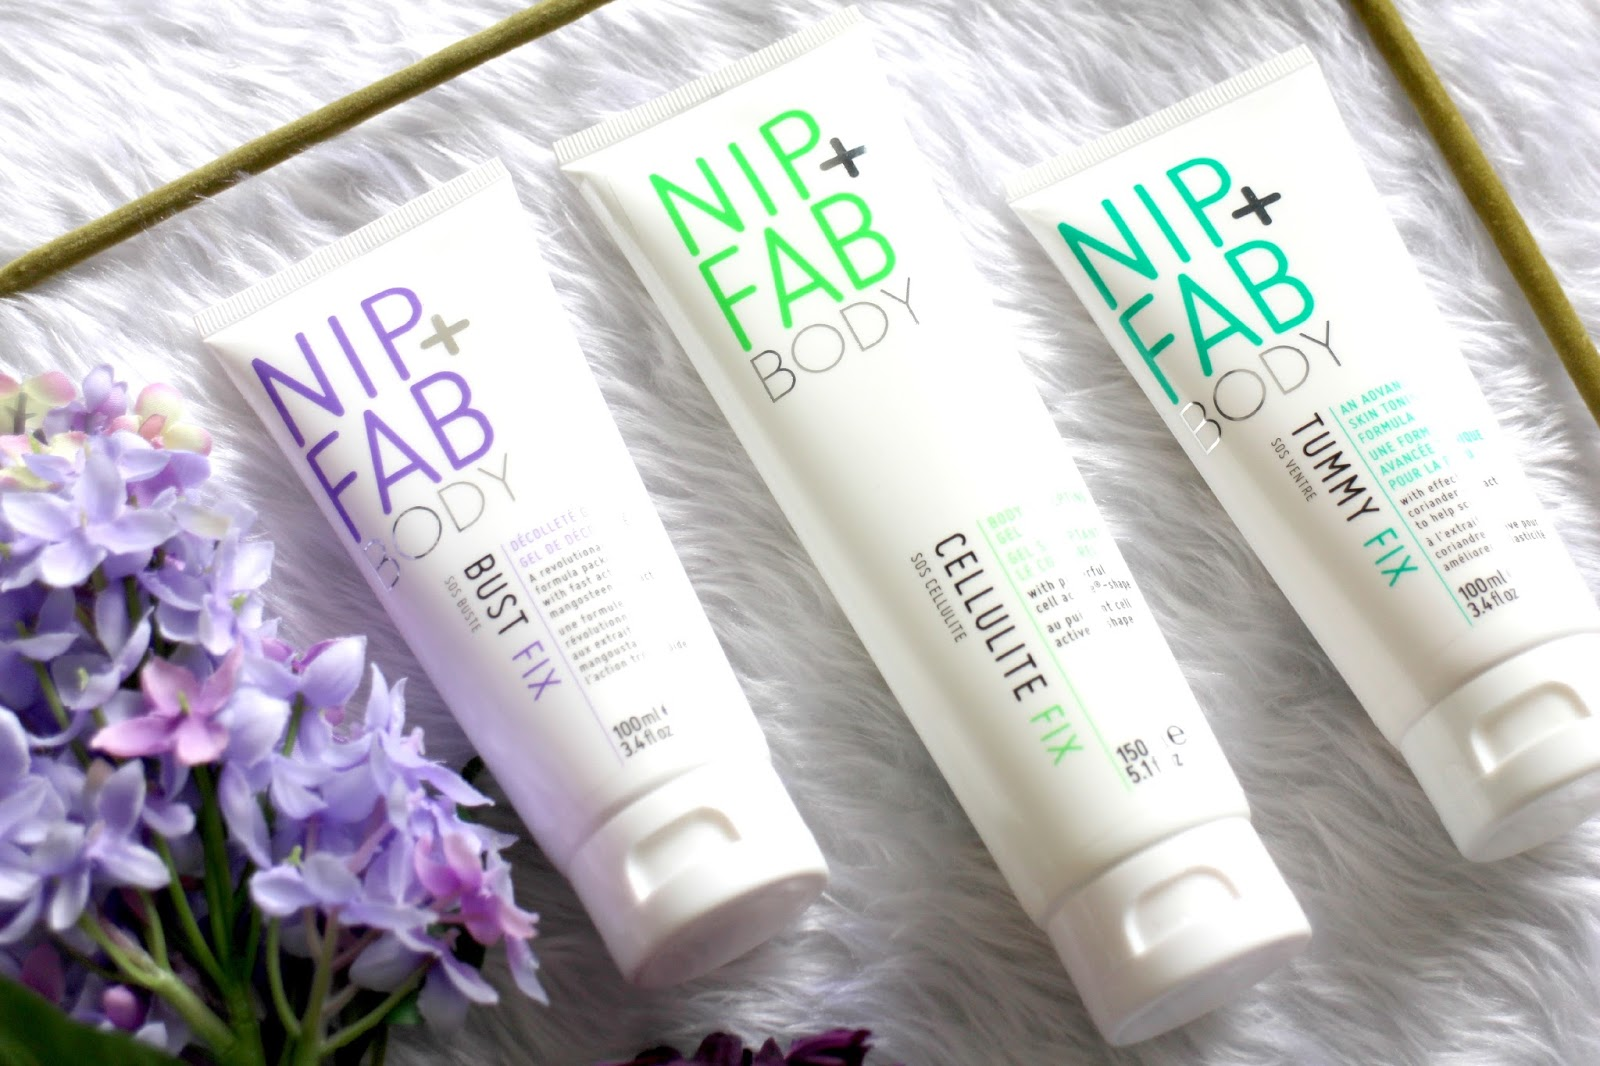 Nip + Fab Bust Cellulite Tummy Fix